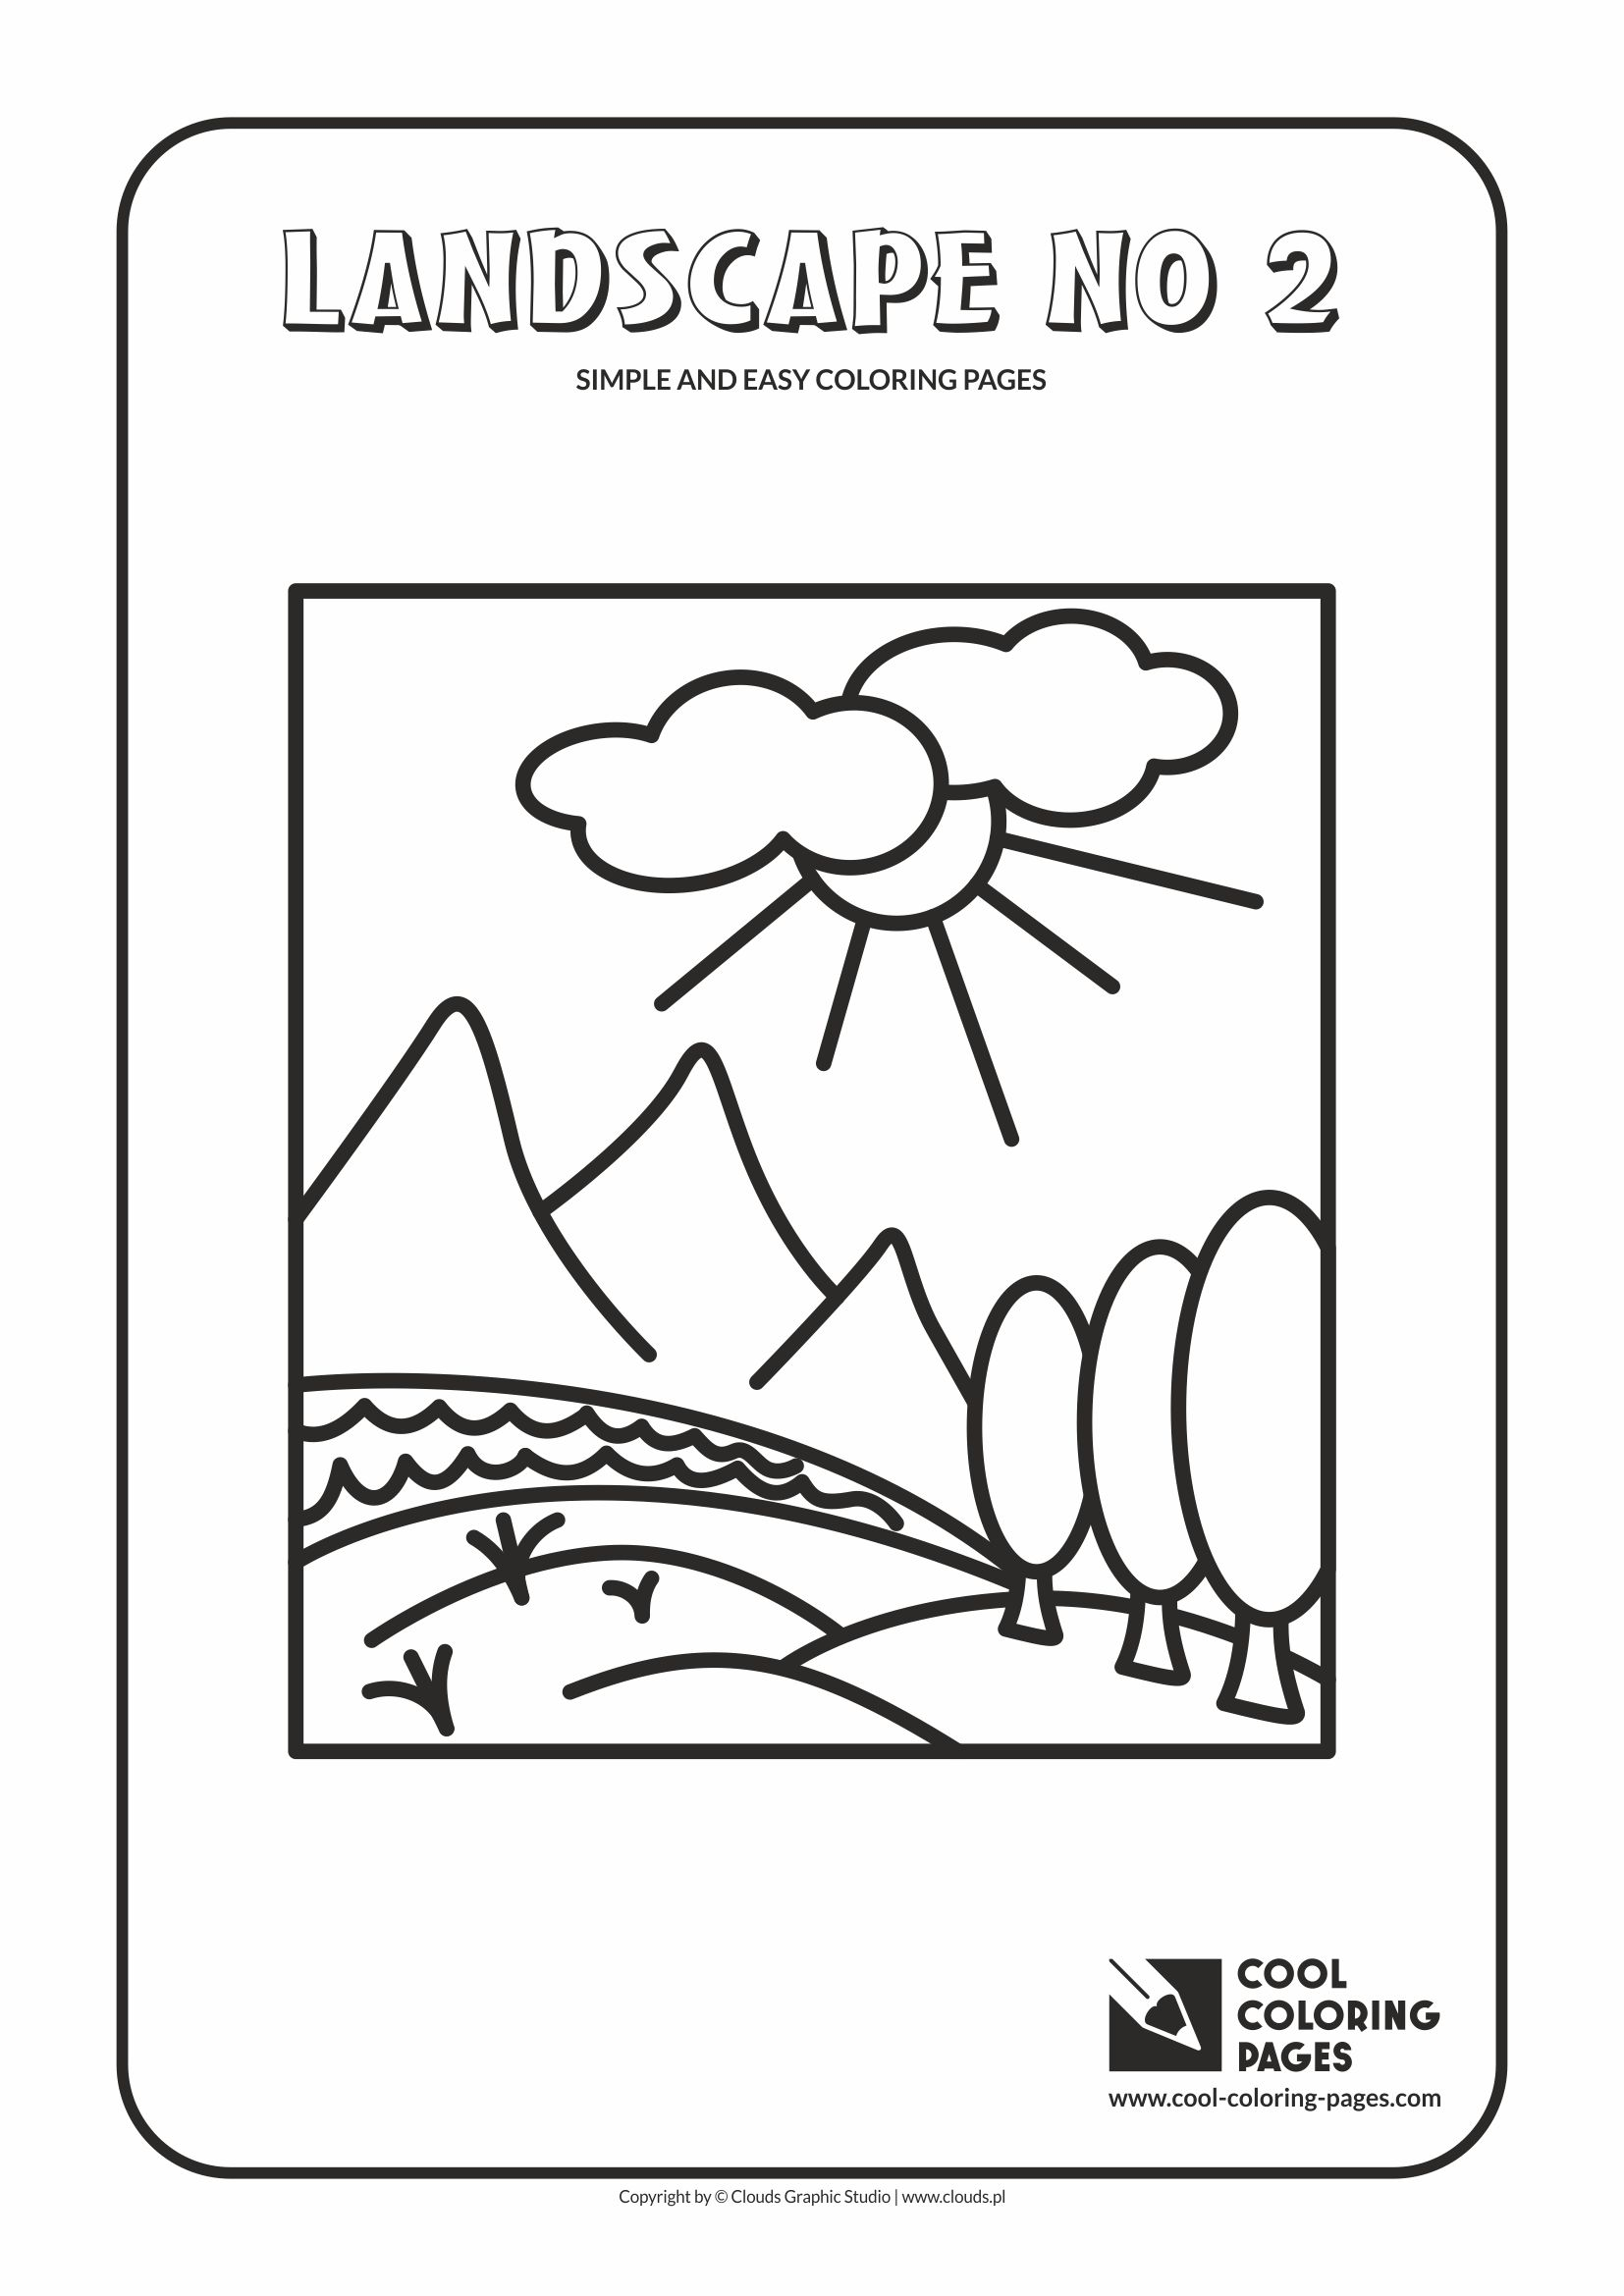 Simple and easy coloring pages for toddlers - Landscape no 2